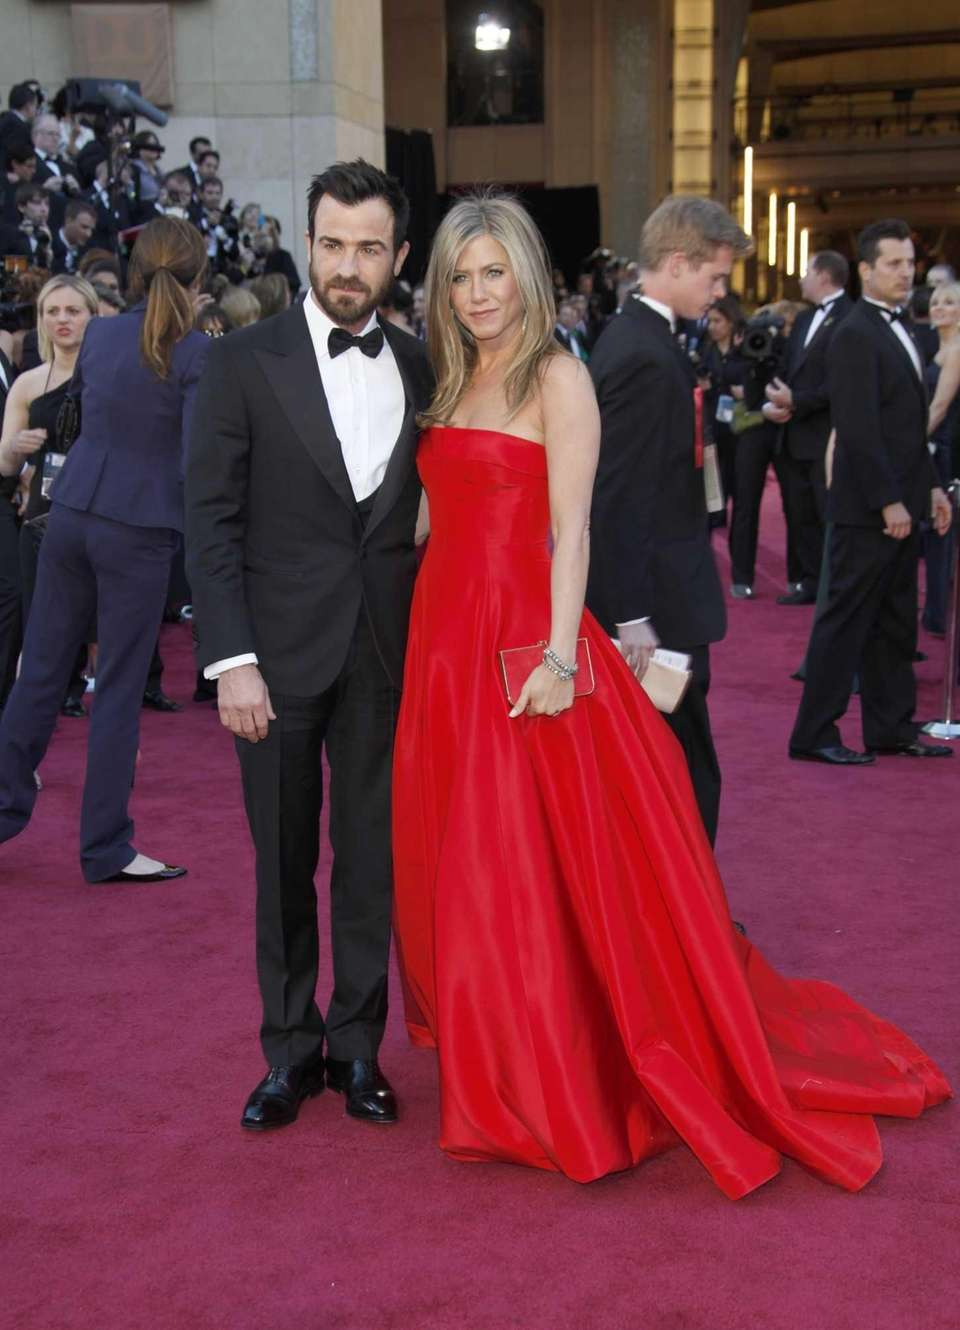 Justin Theroux and Jennifer Aniston arrive at the